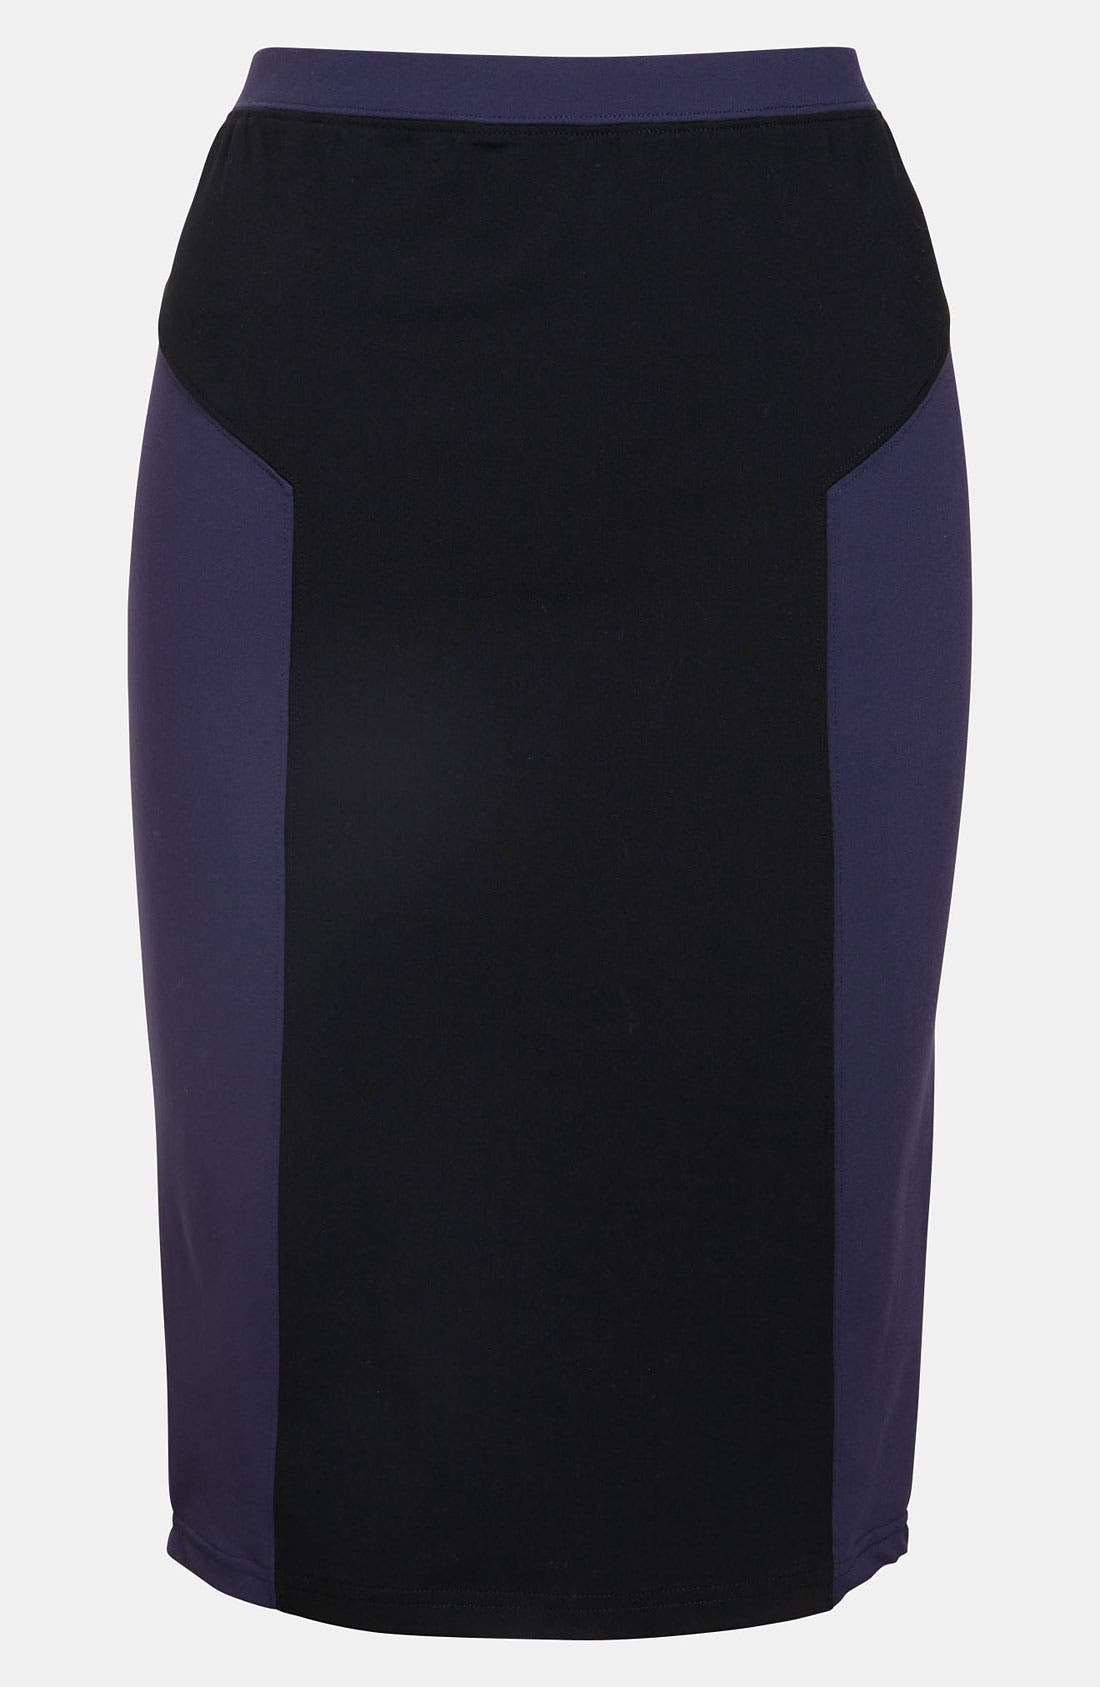 Alternate Image 1 Selected - Leith Colorblock Tube Skirt